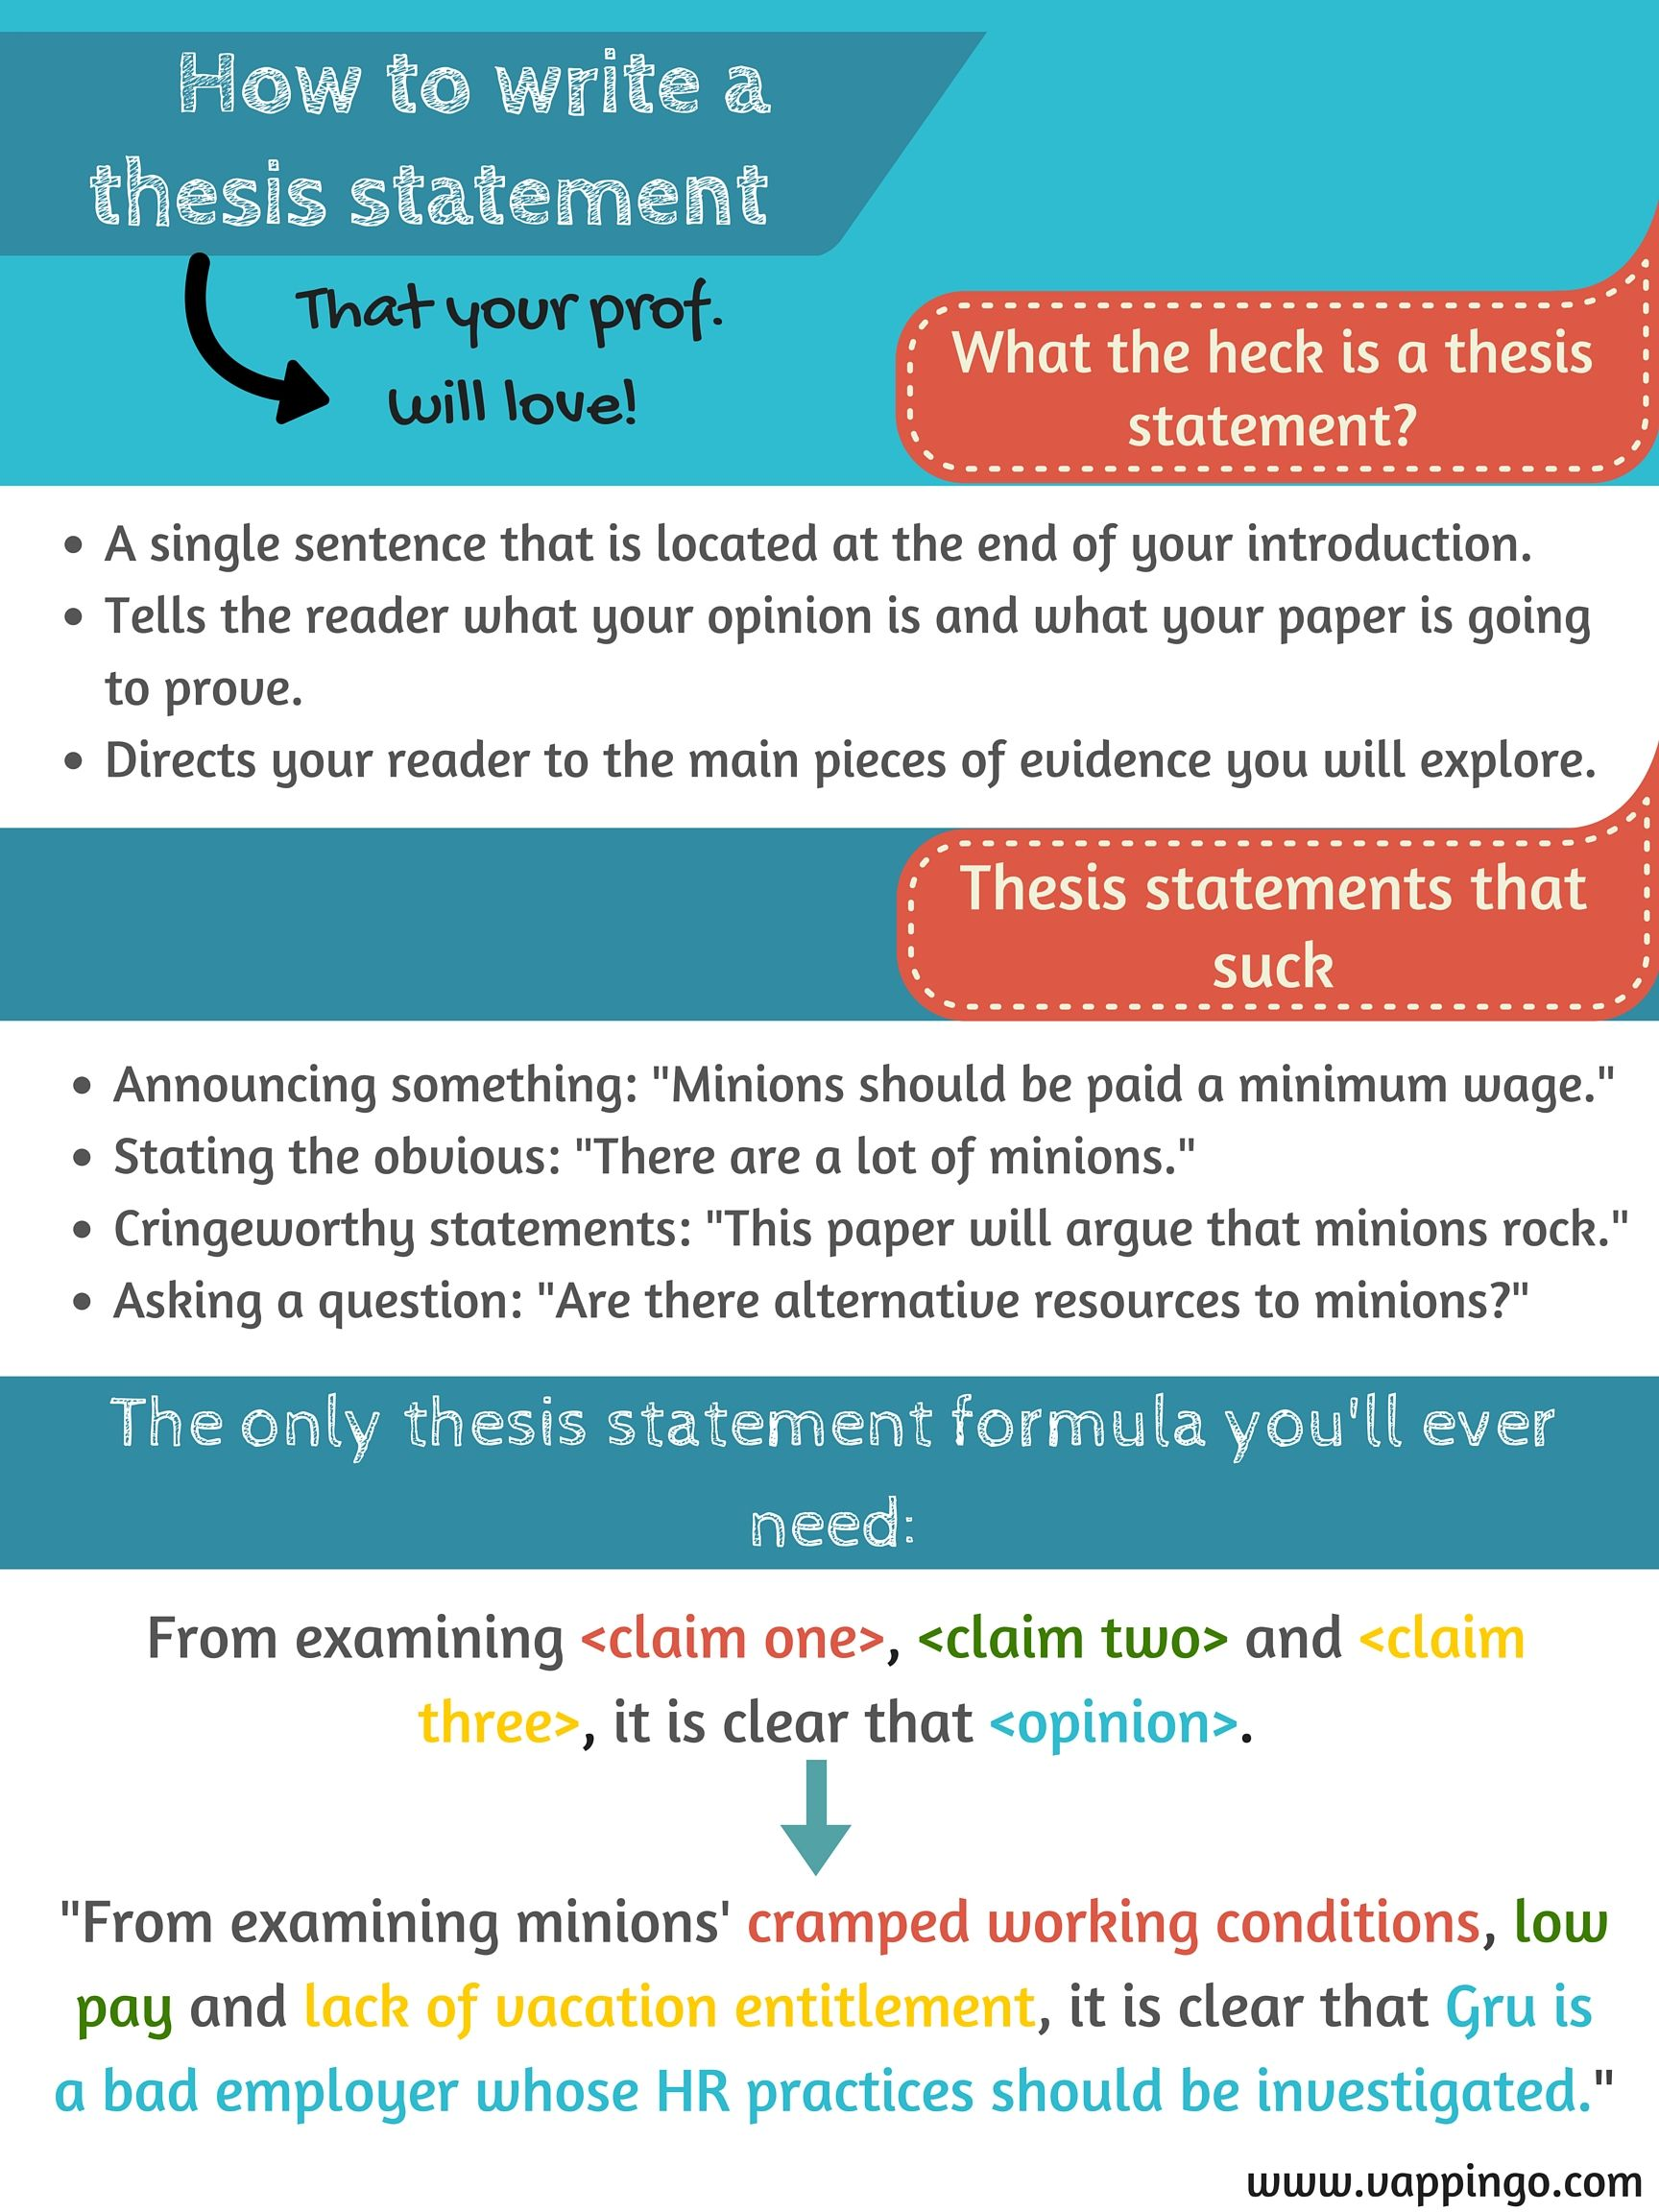 pin by vappingocom on essay writing tips  writing a thesis  learn what common mistakes students make in thesis writing  how to create  a mistake free thesis statement place order for your thesis